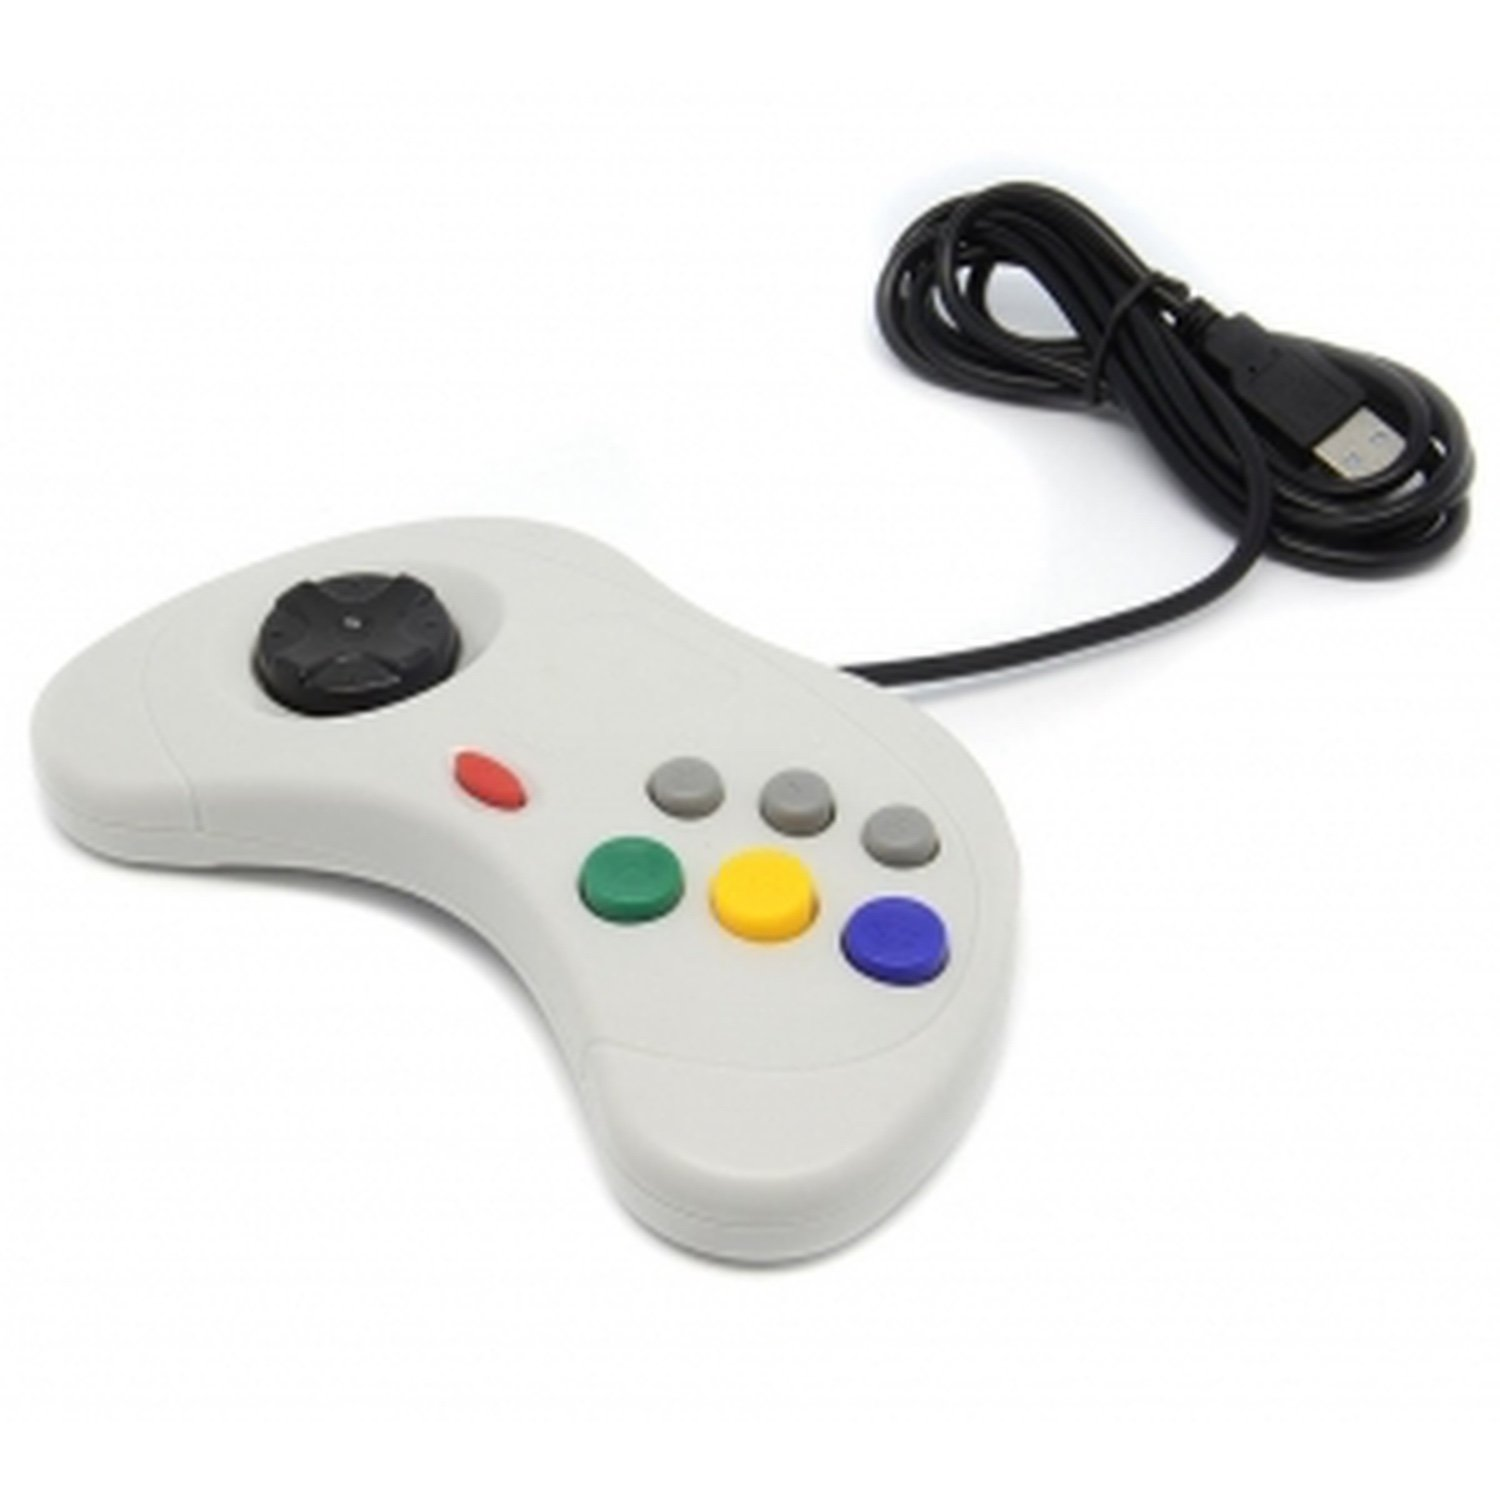 Gray Command Games Sega Saturn Style Pc Usb Controller For Pc AND Mac image